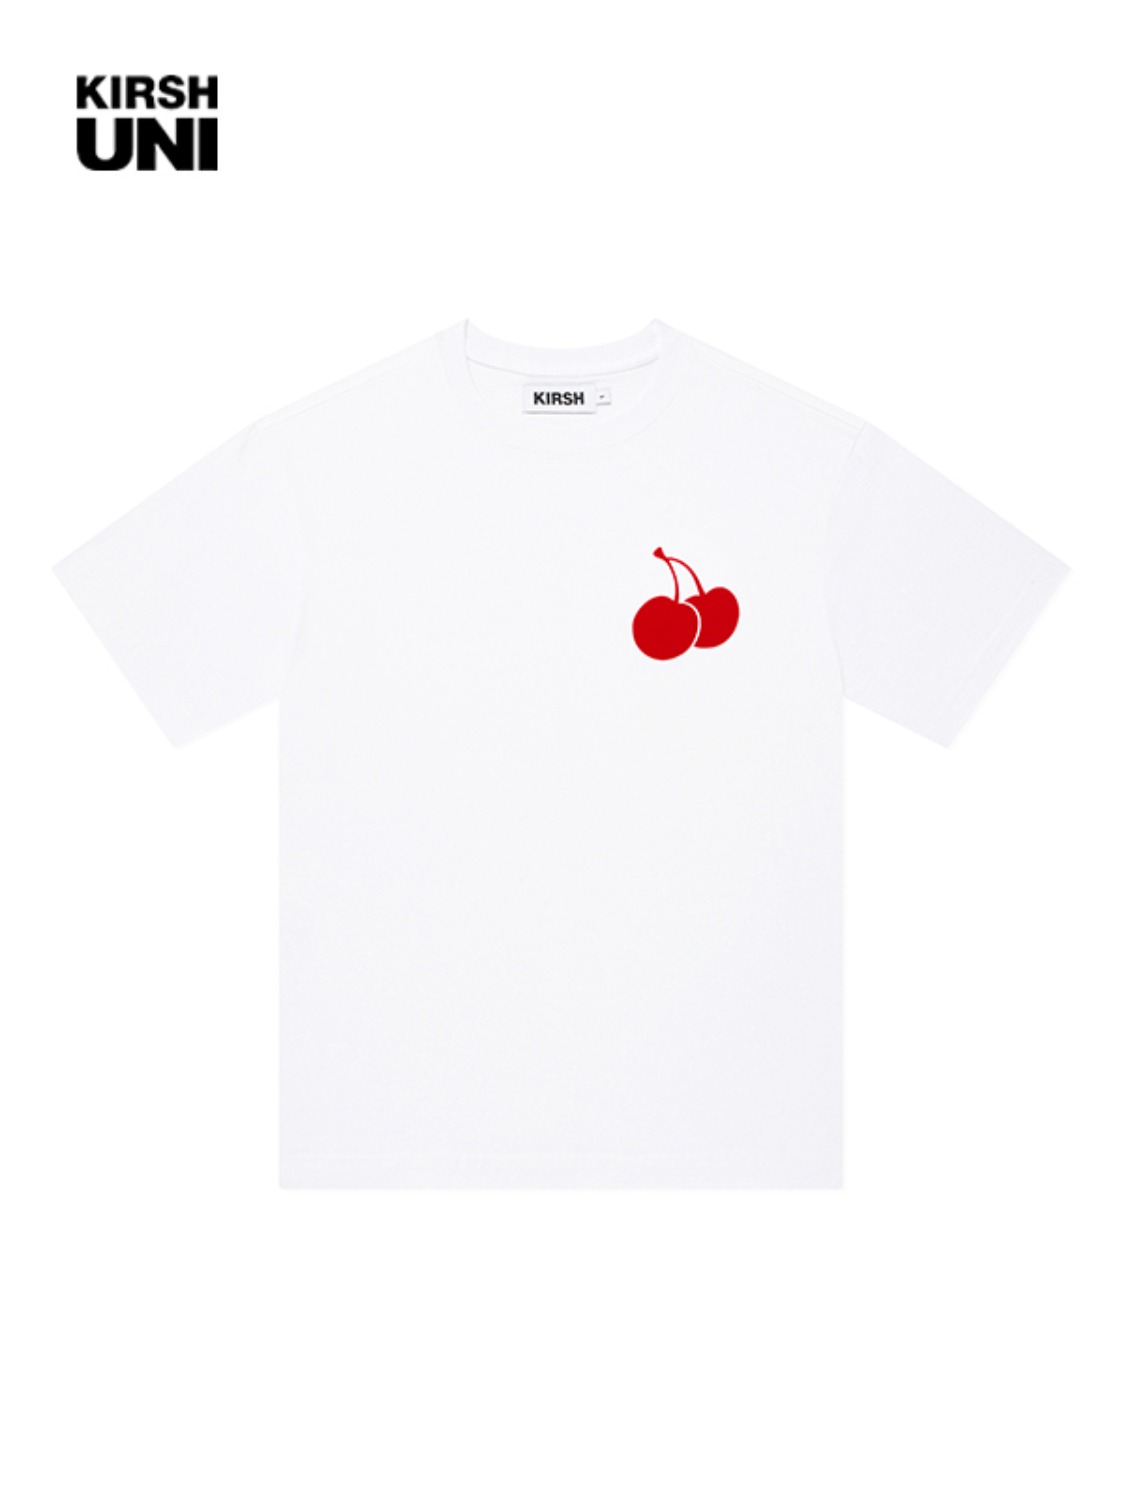 UNI MIDDLE CHERRY T-SHIRT KH [WHITE] / 송강 포토카드 증정